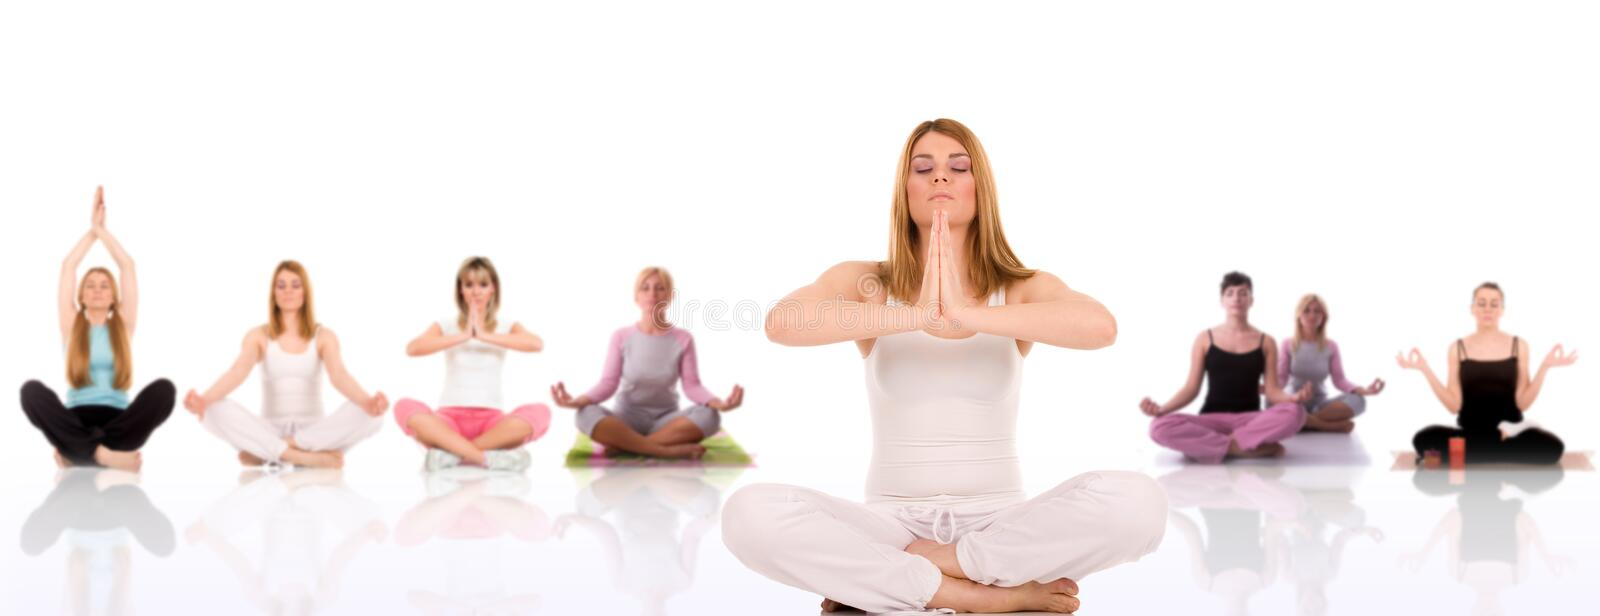 Download Yoga pose stock photo. Image of beauty, beautiful, athletic - 4968990